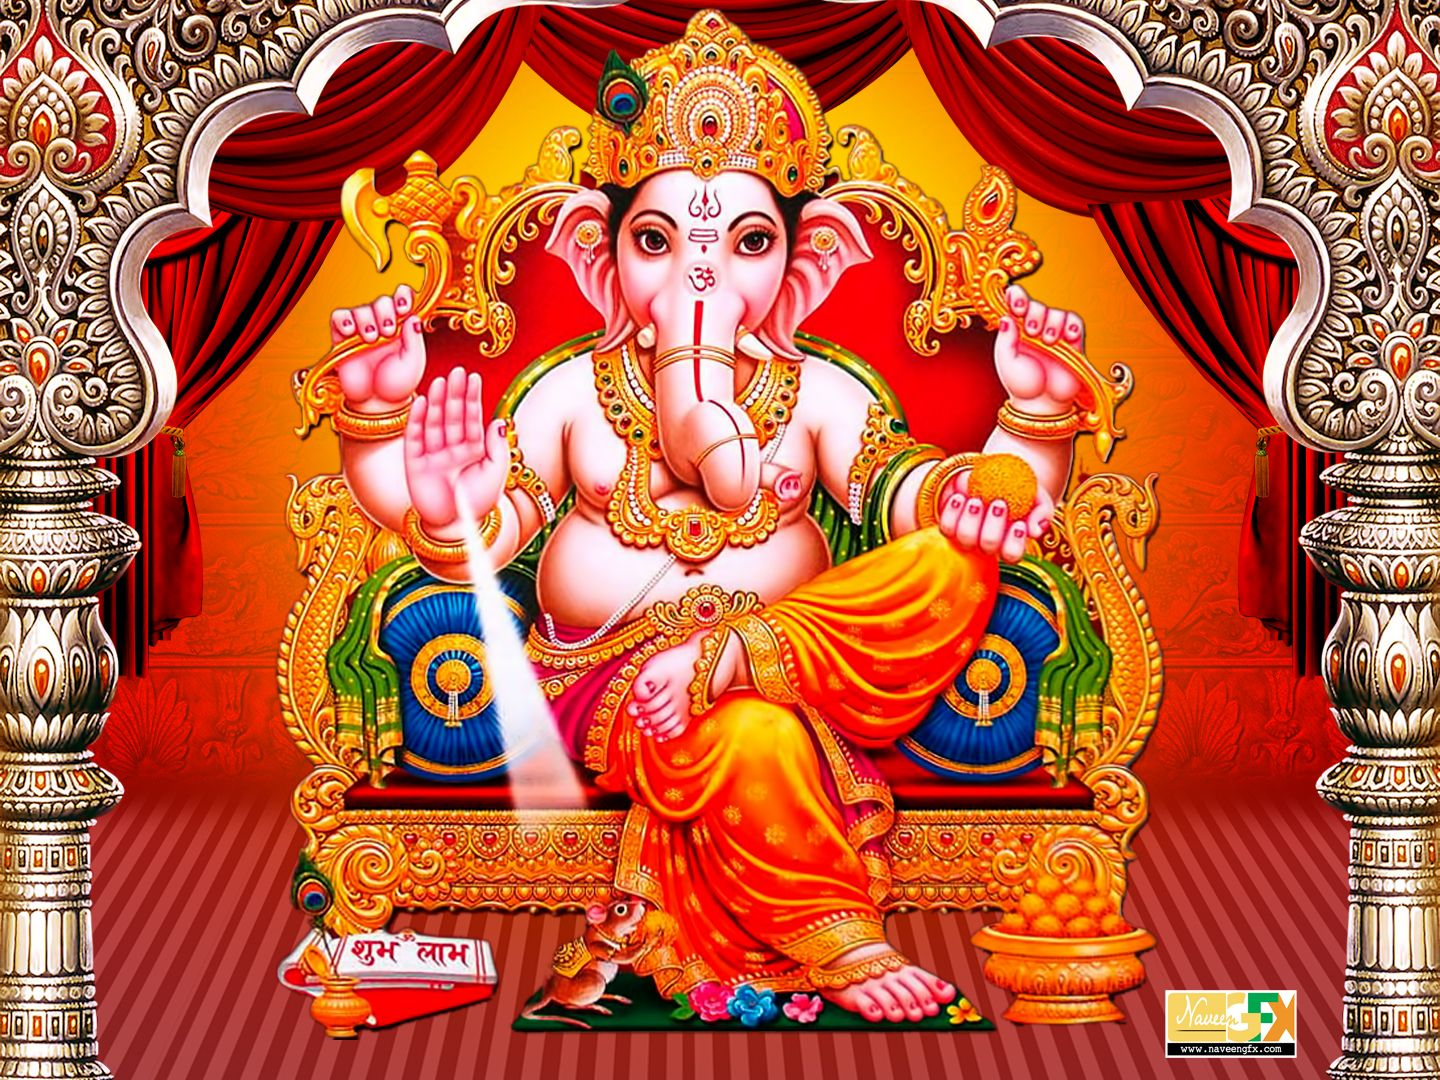 Lord Ganesha Pictures Download: Lord Ganesha HD Images Wallpapers Free Downloads